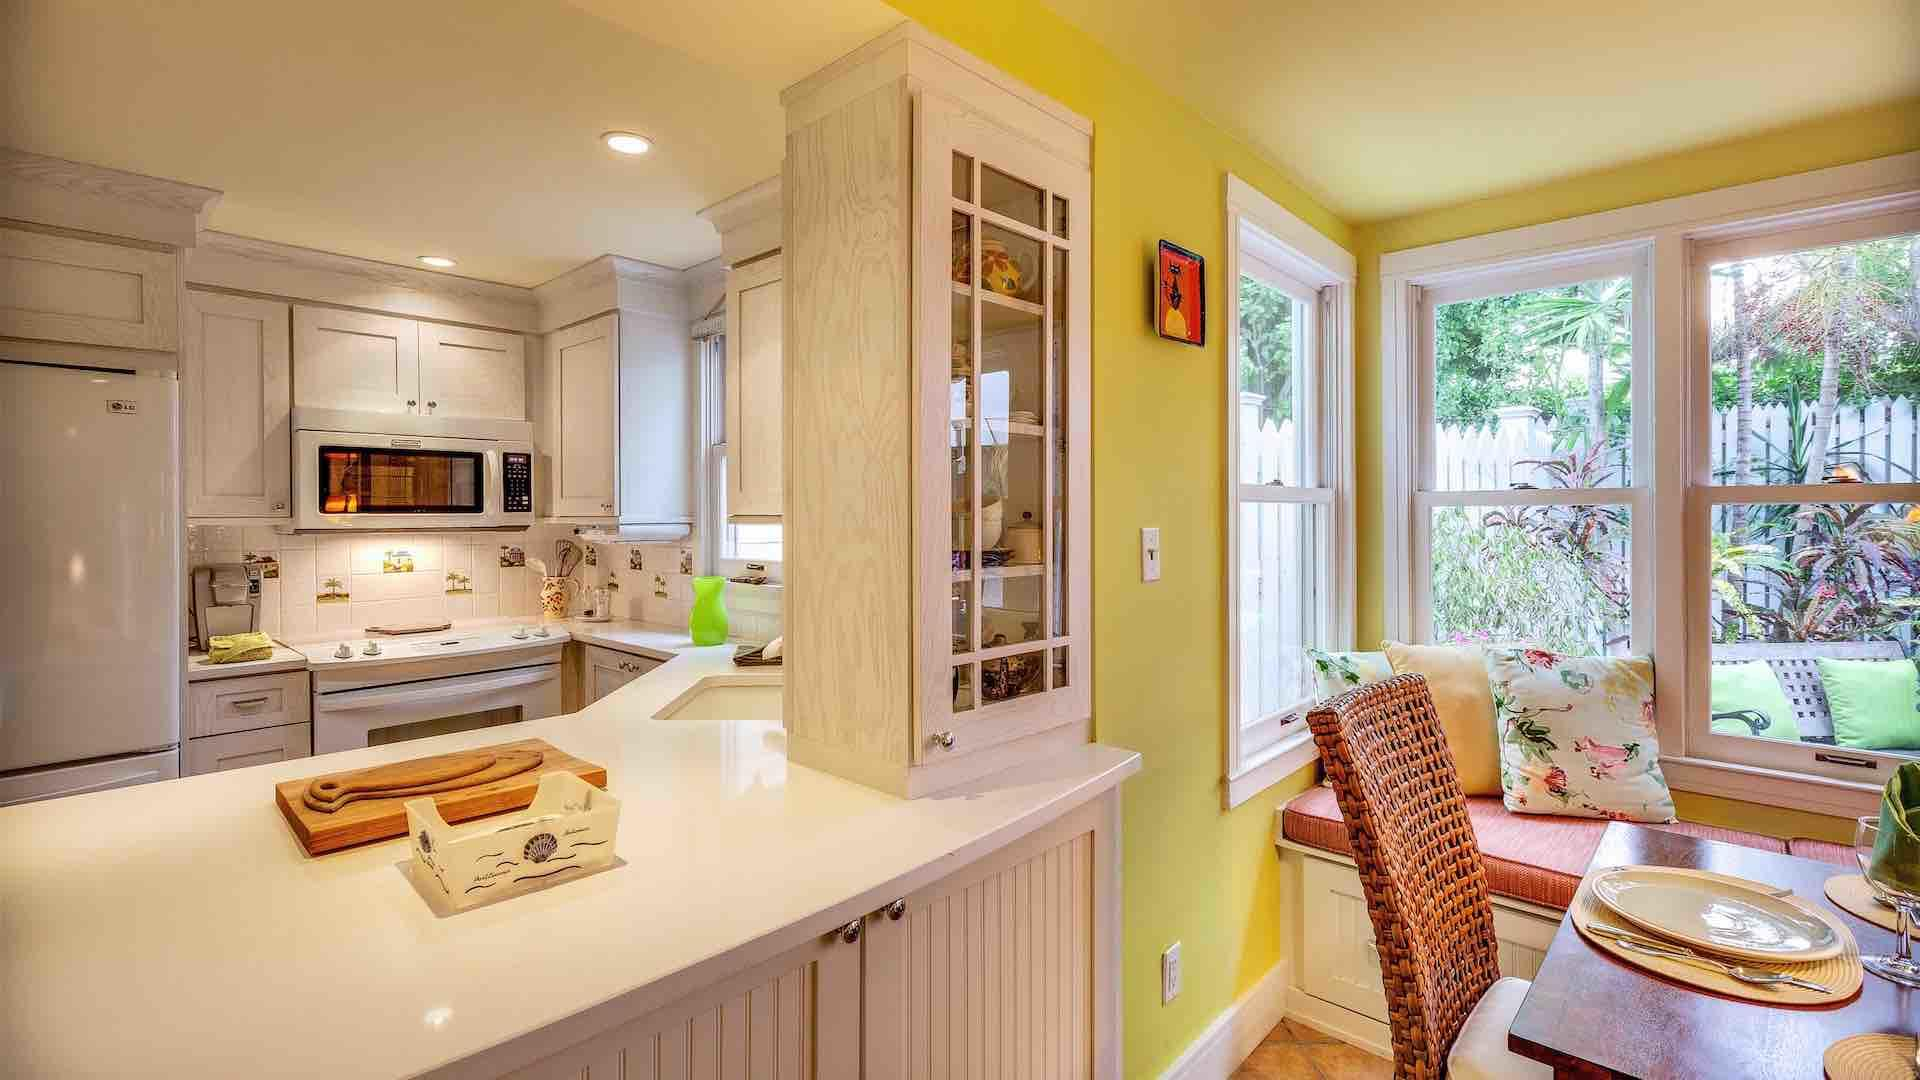 The kitchen passthrough is a great convenience when dining inside...